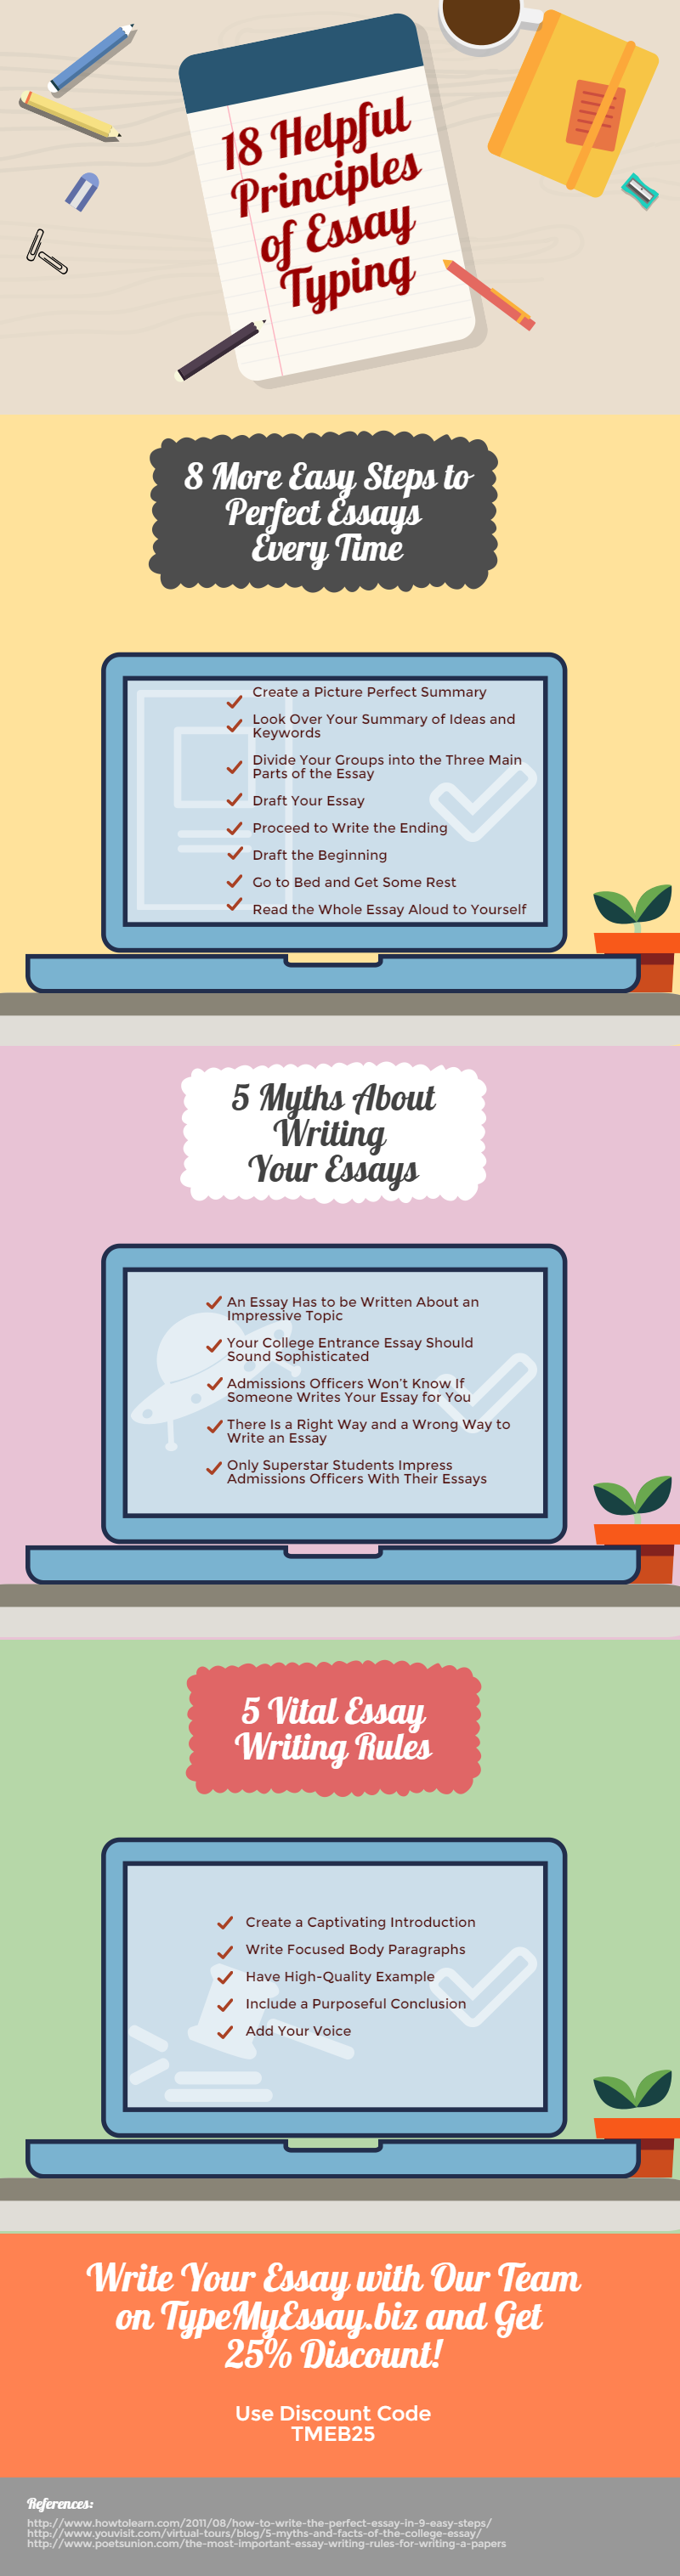 Making A Thesis Statement For An Essay  Example Of A Thesis Statement For An Essay also Example Of Essay Writing In English  Helpful Principles Of Essay Typing  Visually Essay On Health Promotion